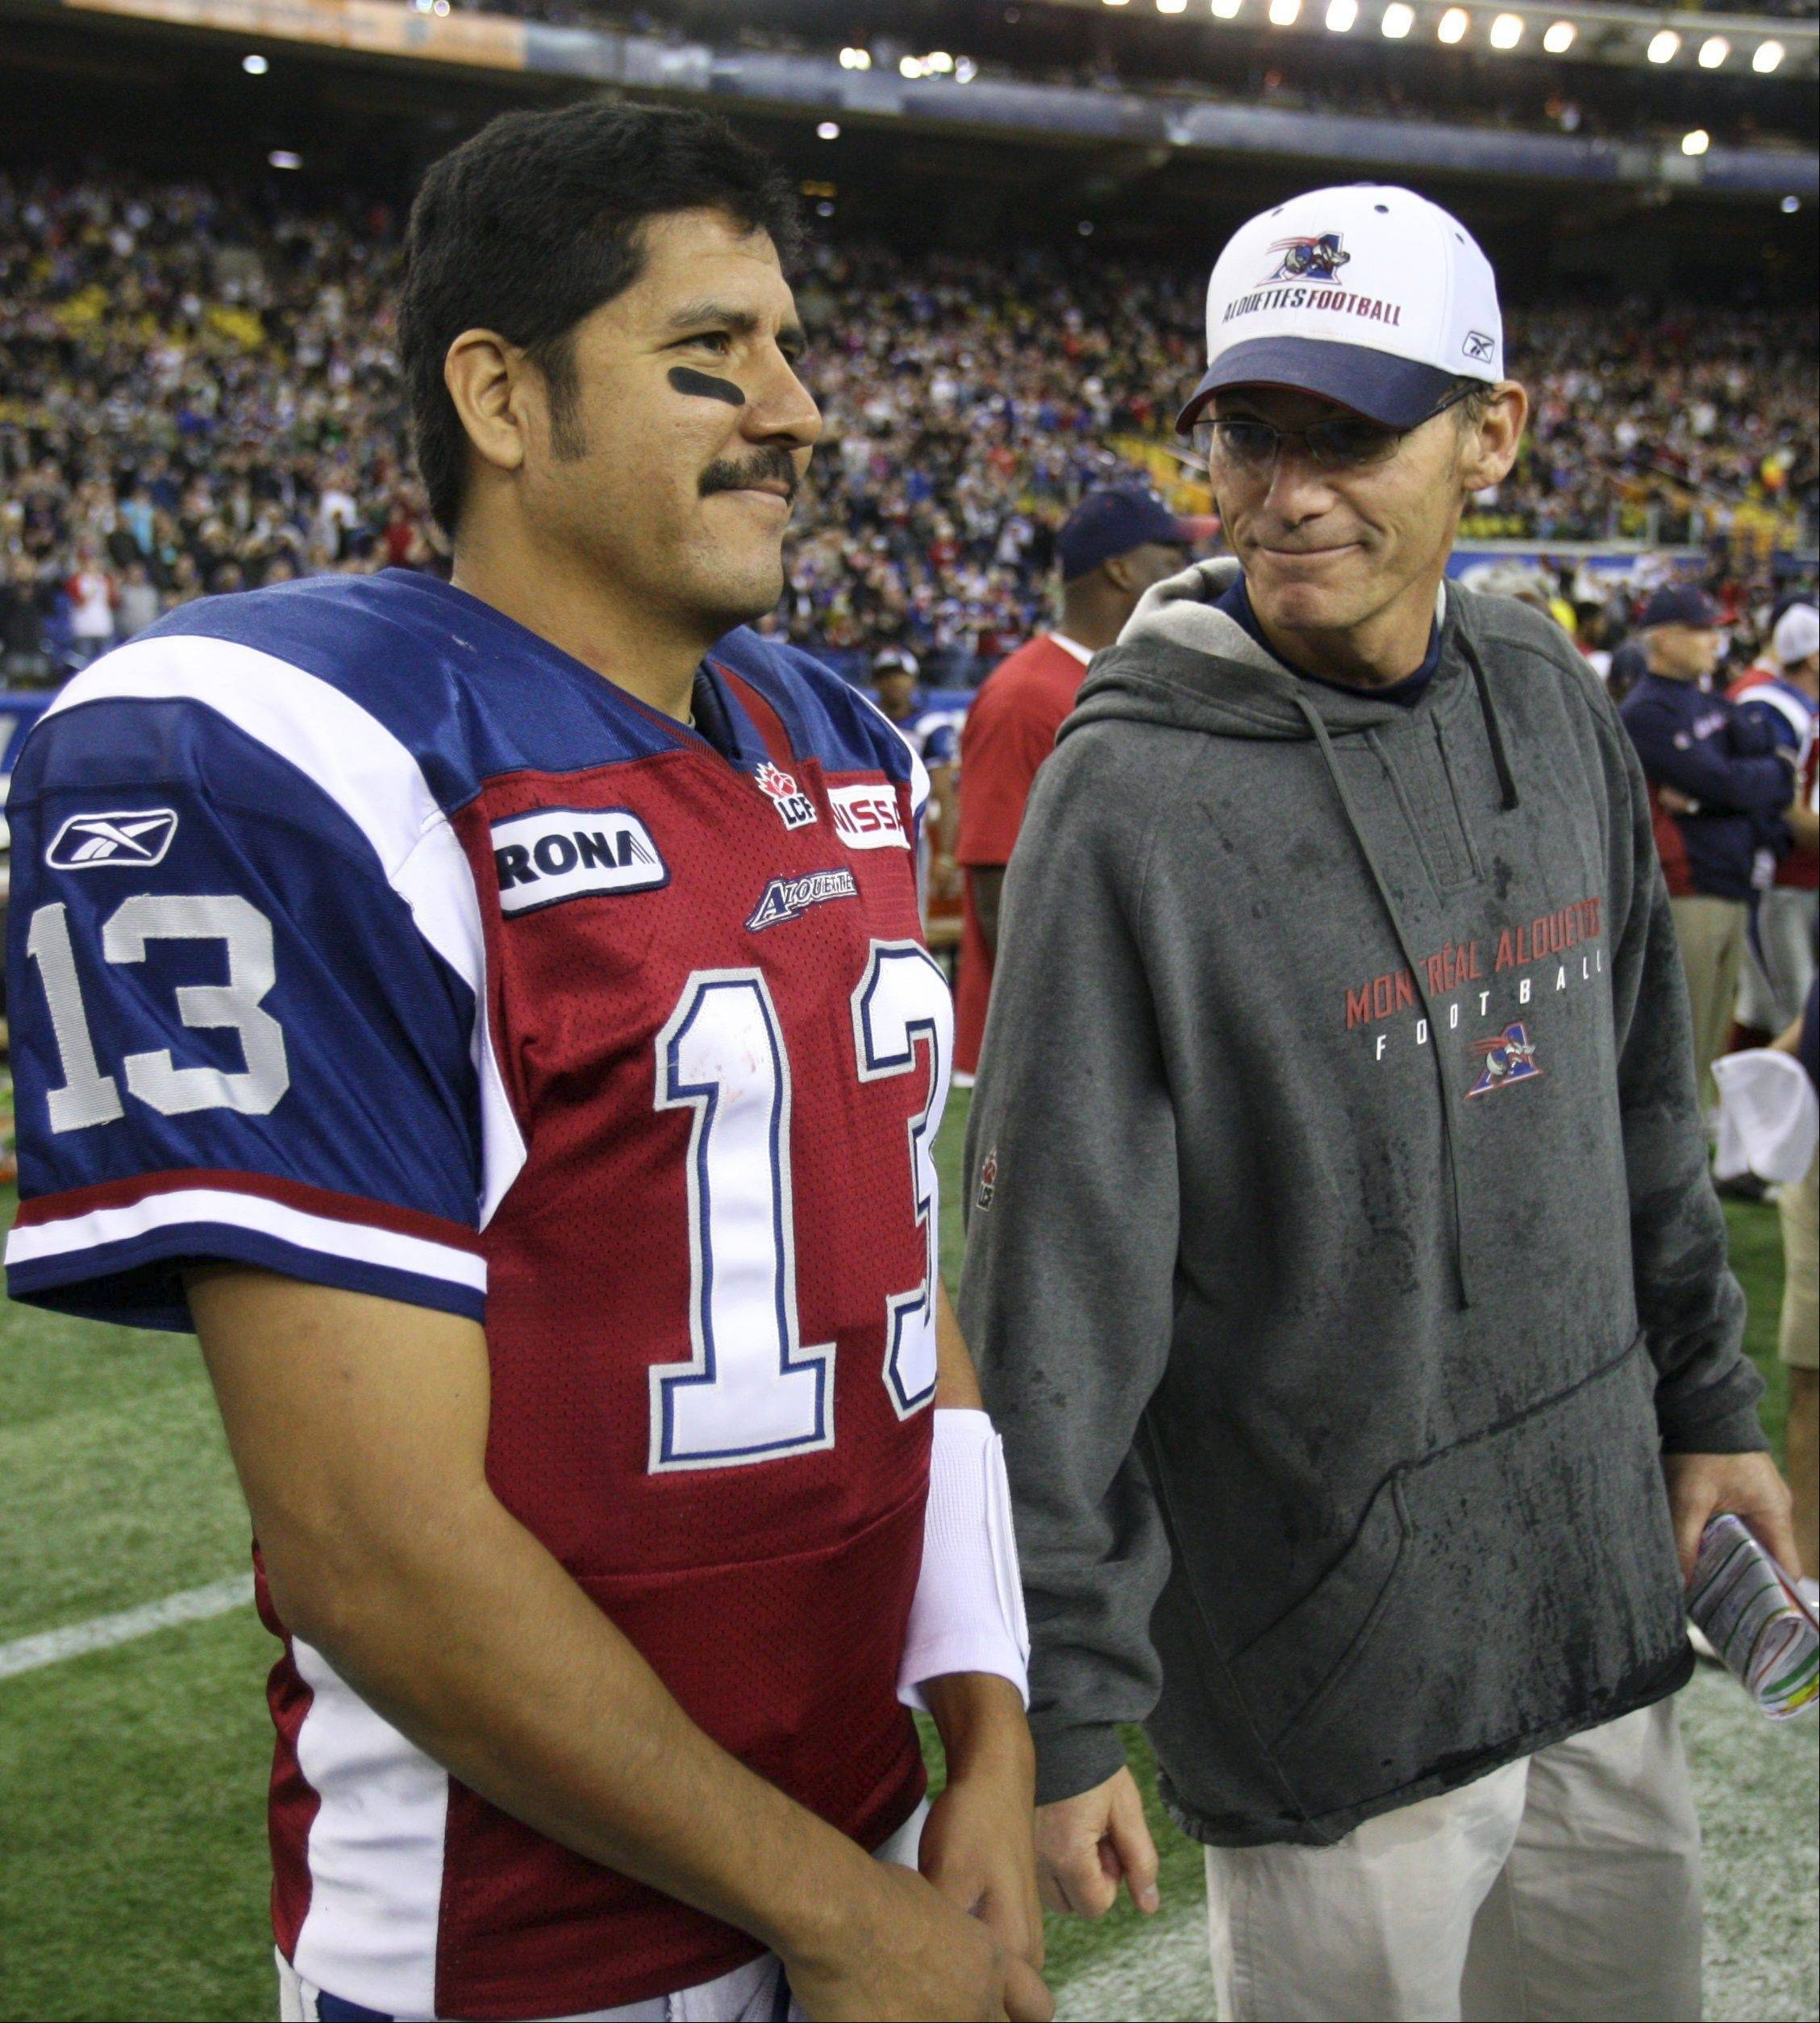 Montreal Alouettes head coach Mark Trestman, here with quarterback Anthony Calvillo, has denied a report that he has been offered the Bears' head coaching job. NFL analyst Jimmy Johnson, who worked with Trestman at Miami, tweeted that Trestman will be getting the job in Chicago.